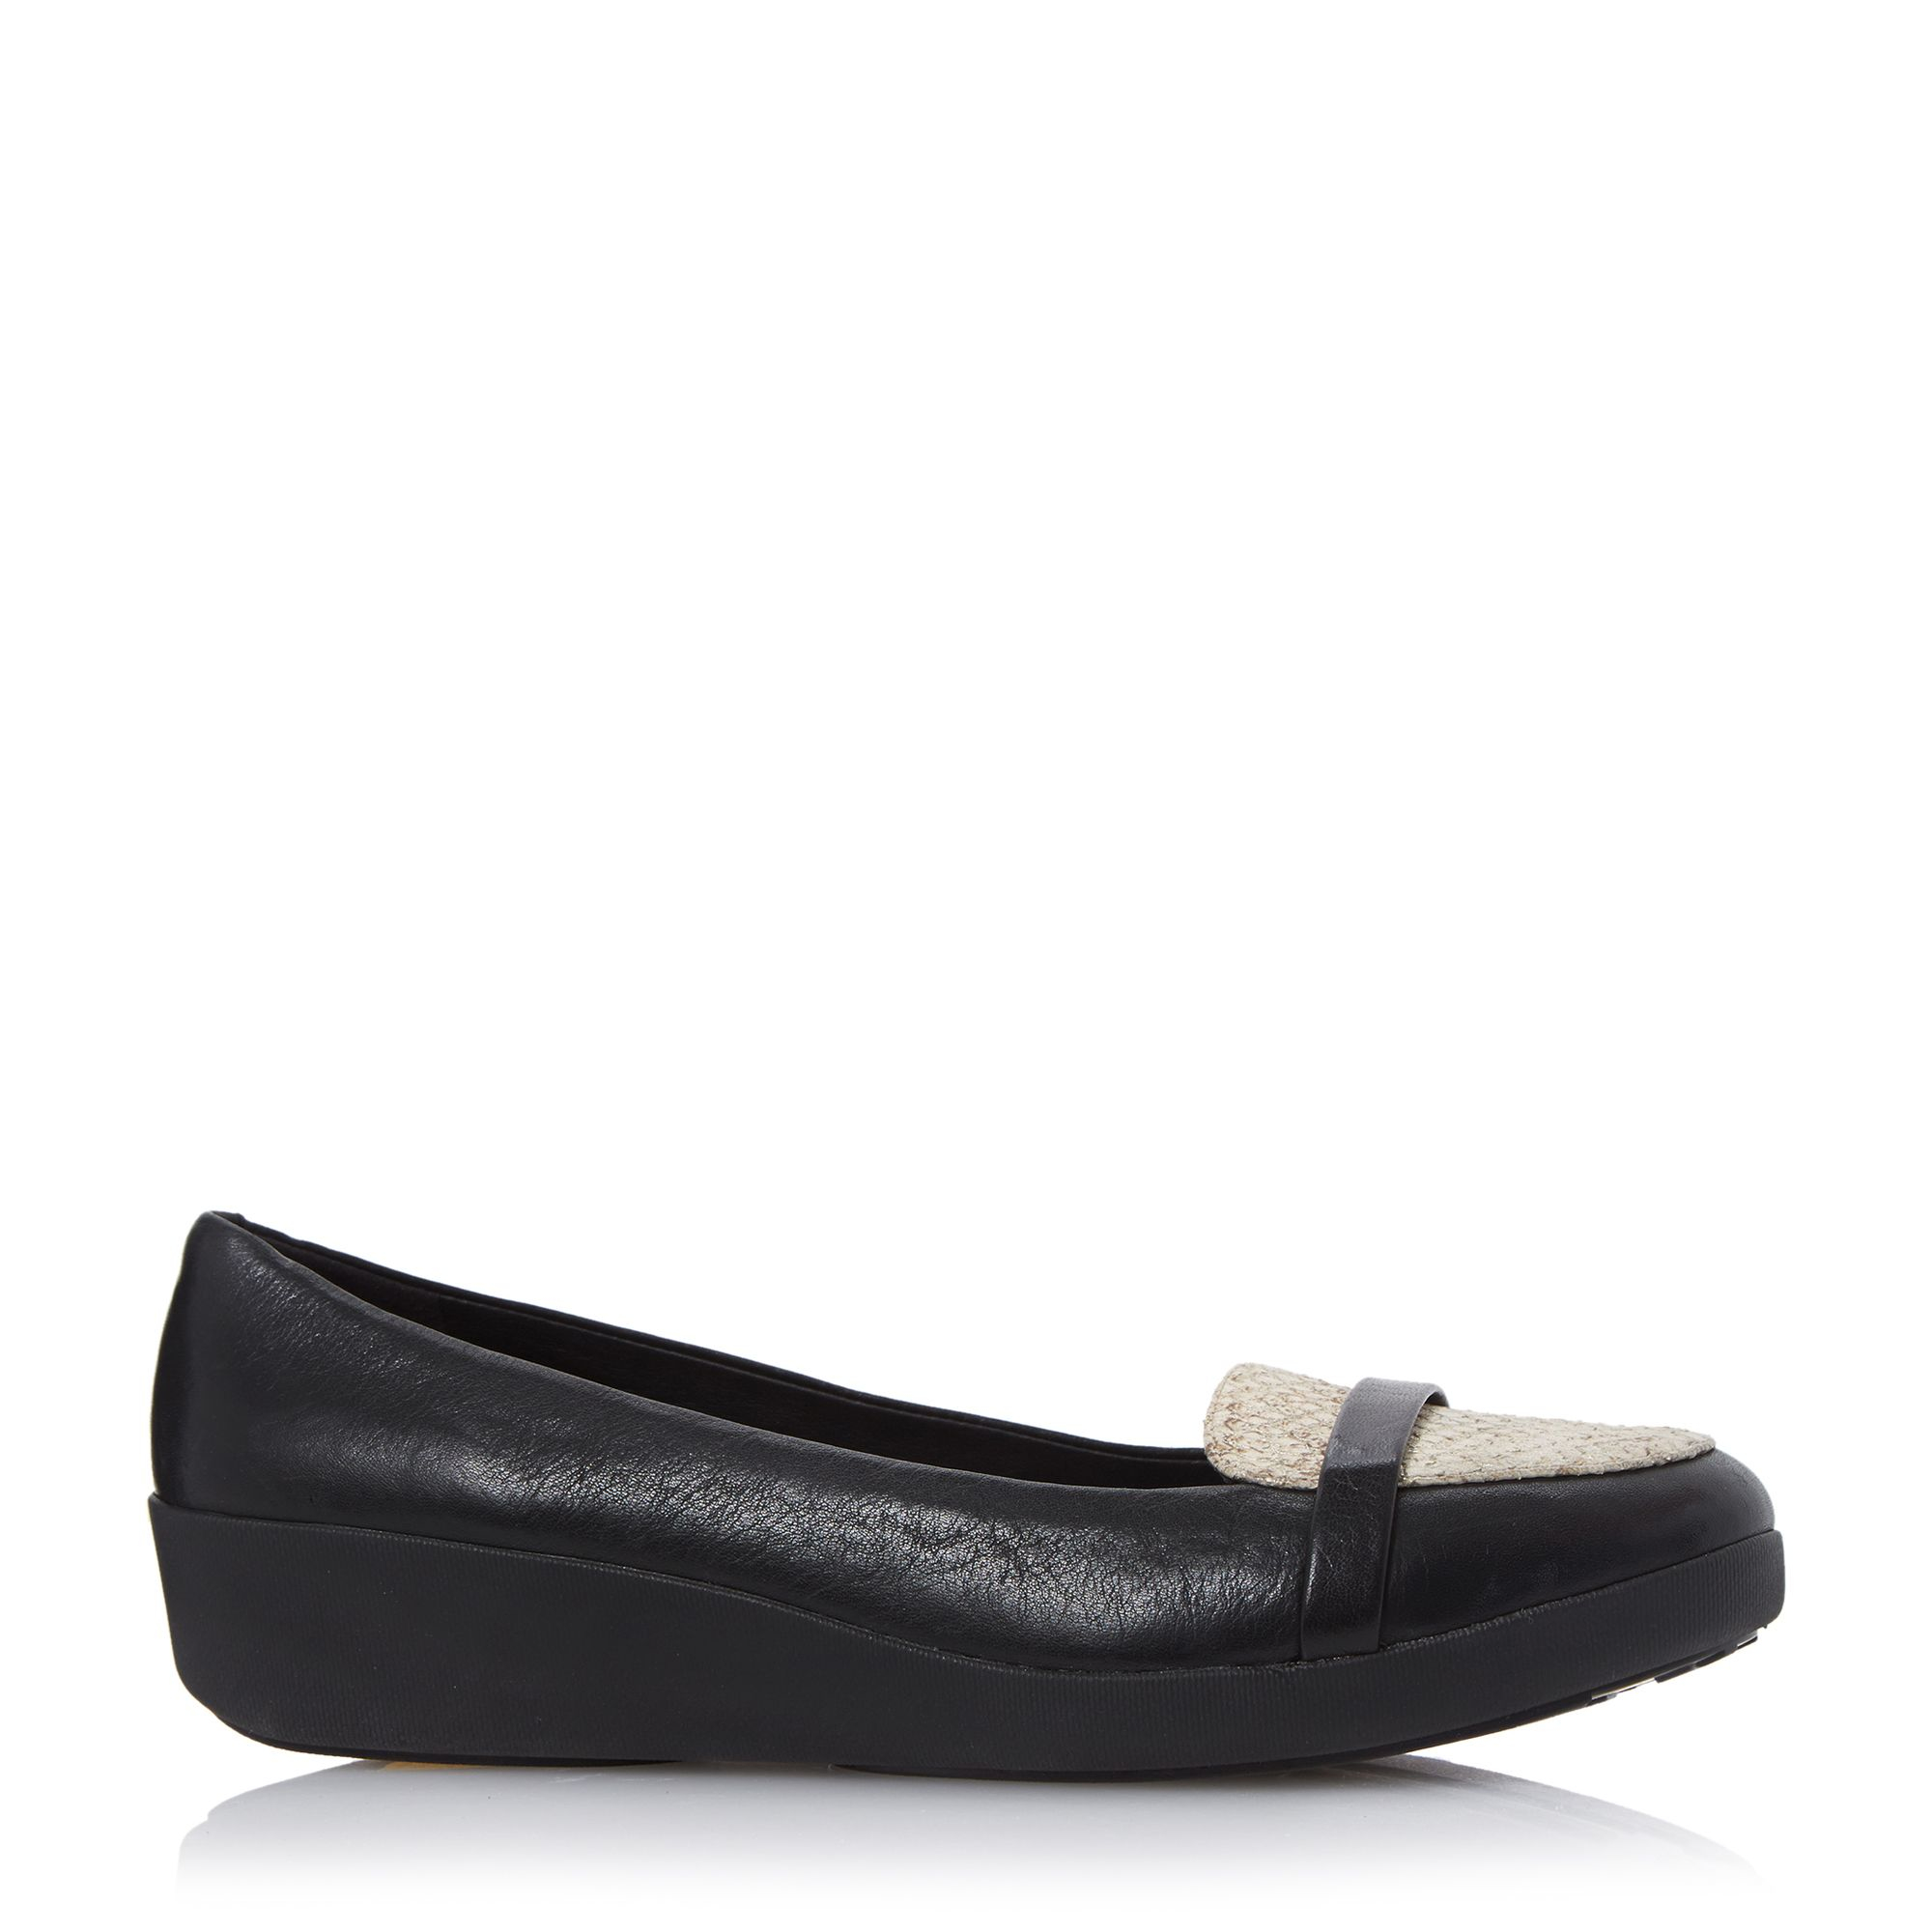 7a85c85a2 Fitflop Flex Loafer Leather Black - www.mhr-usa.com